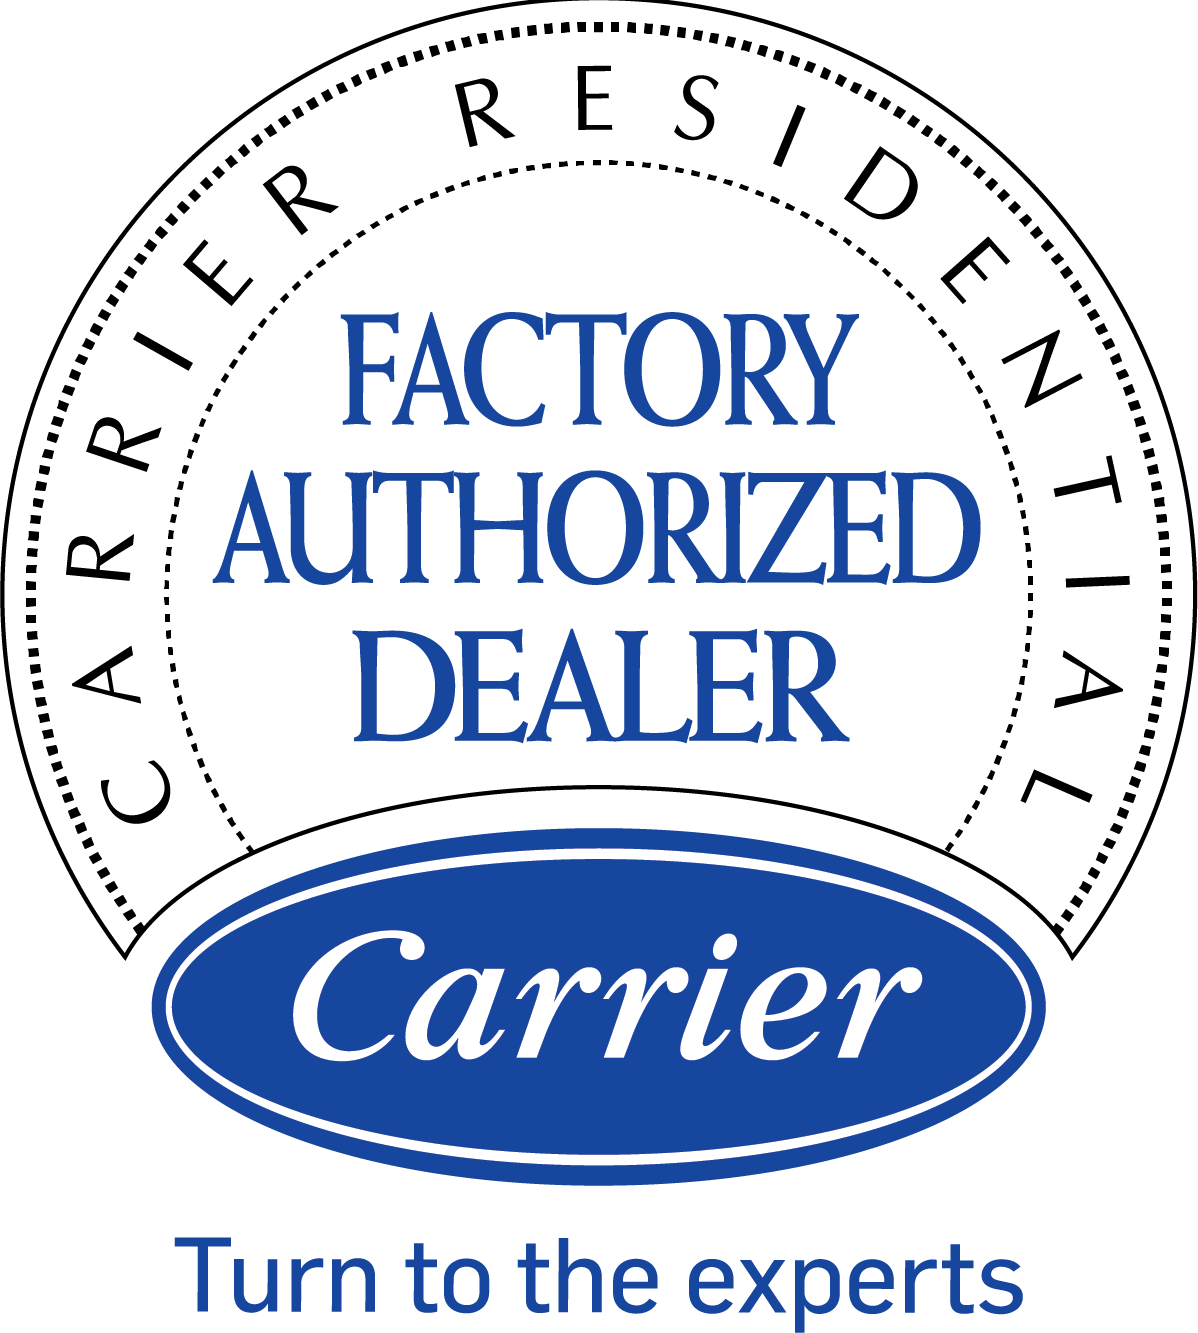 carrier residential factory authorized dealer logo